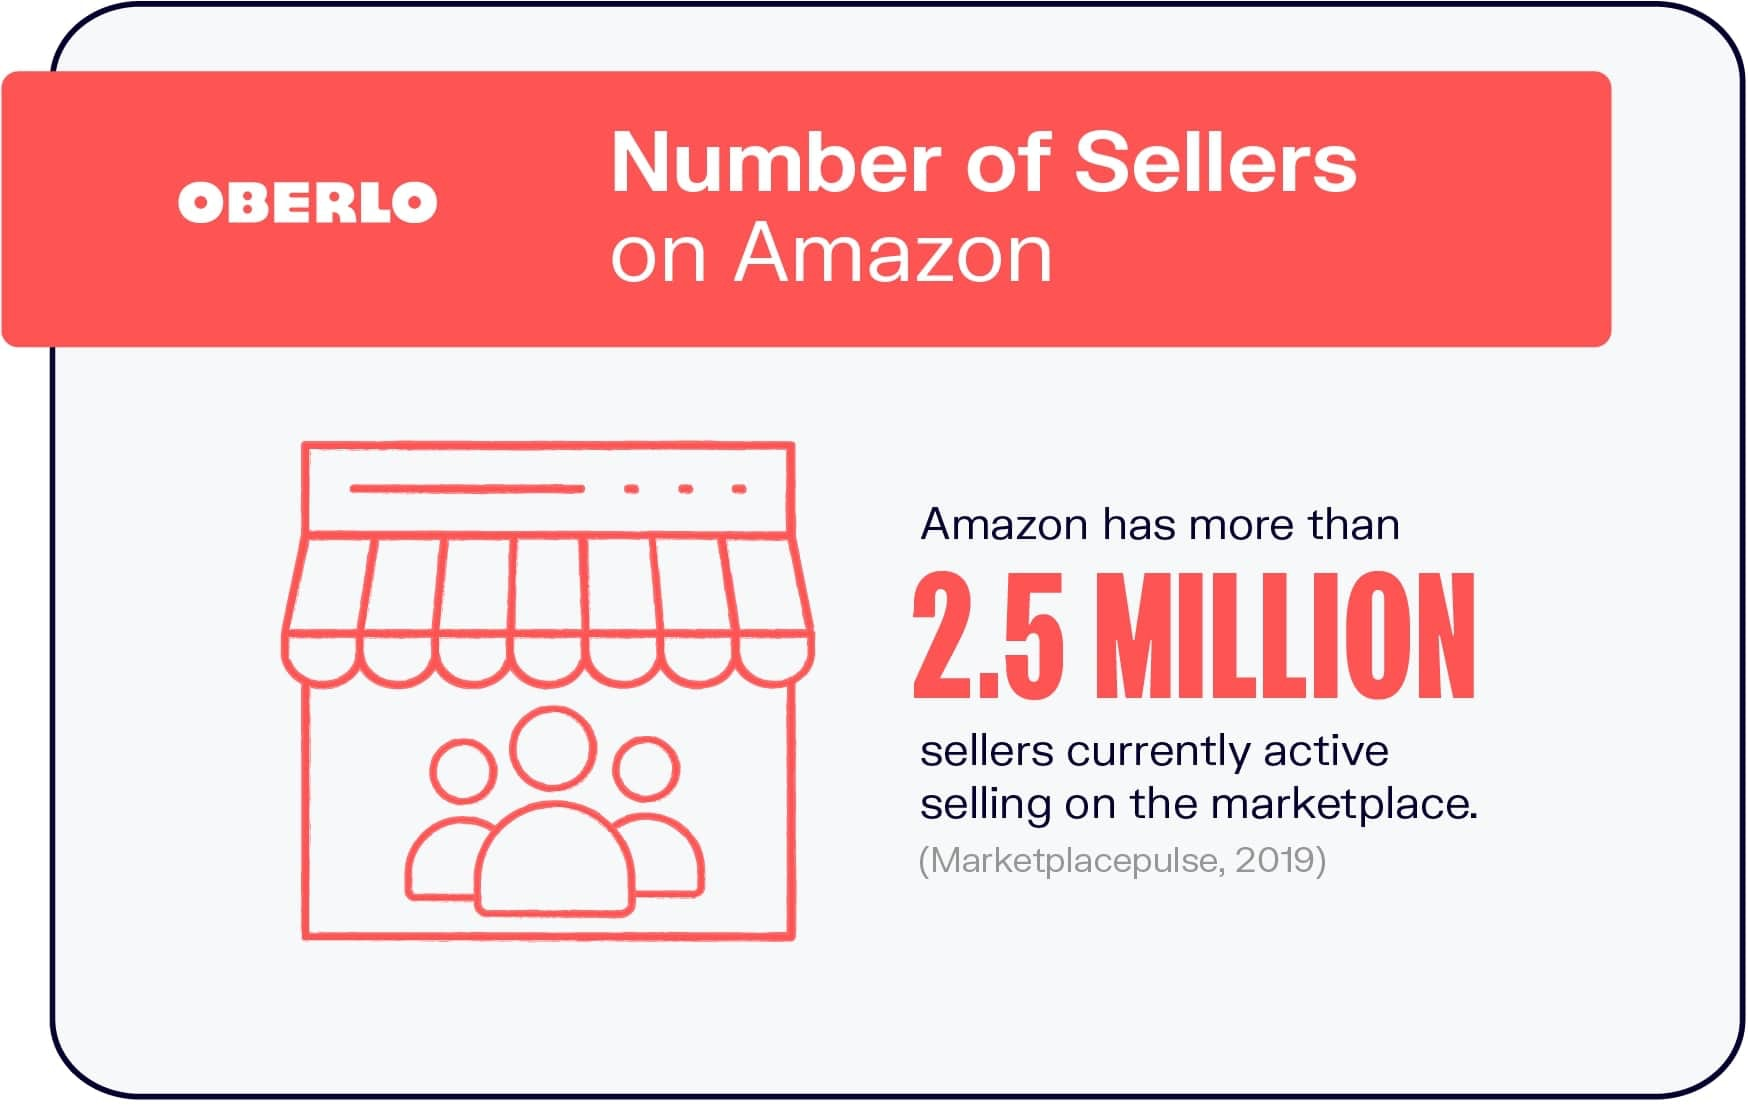 Number of Sellers on Amazon